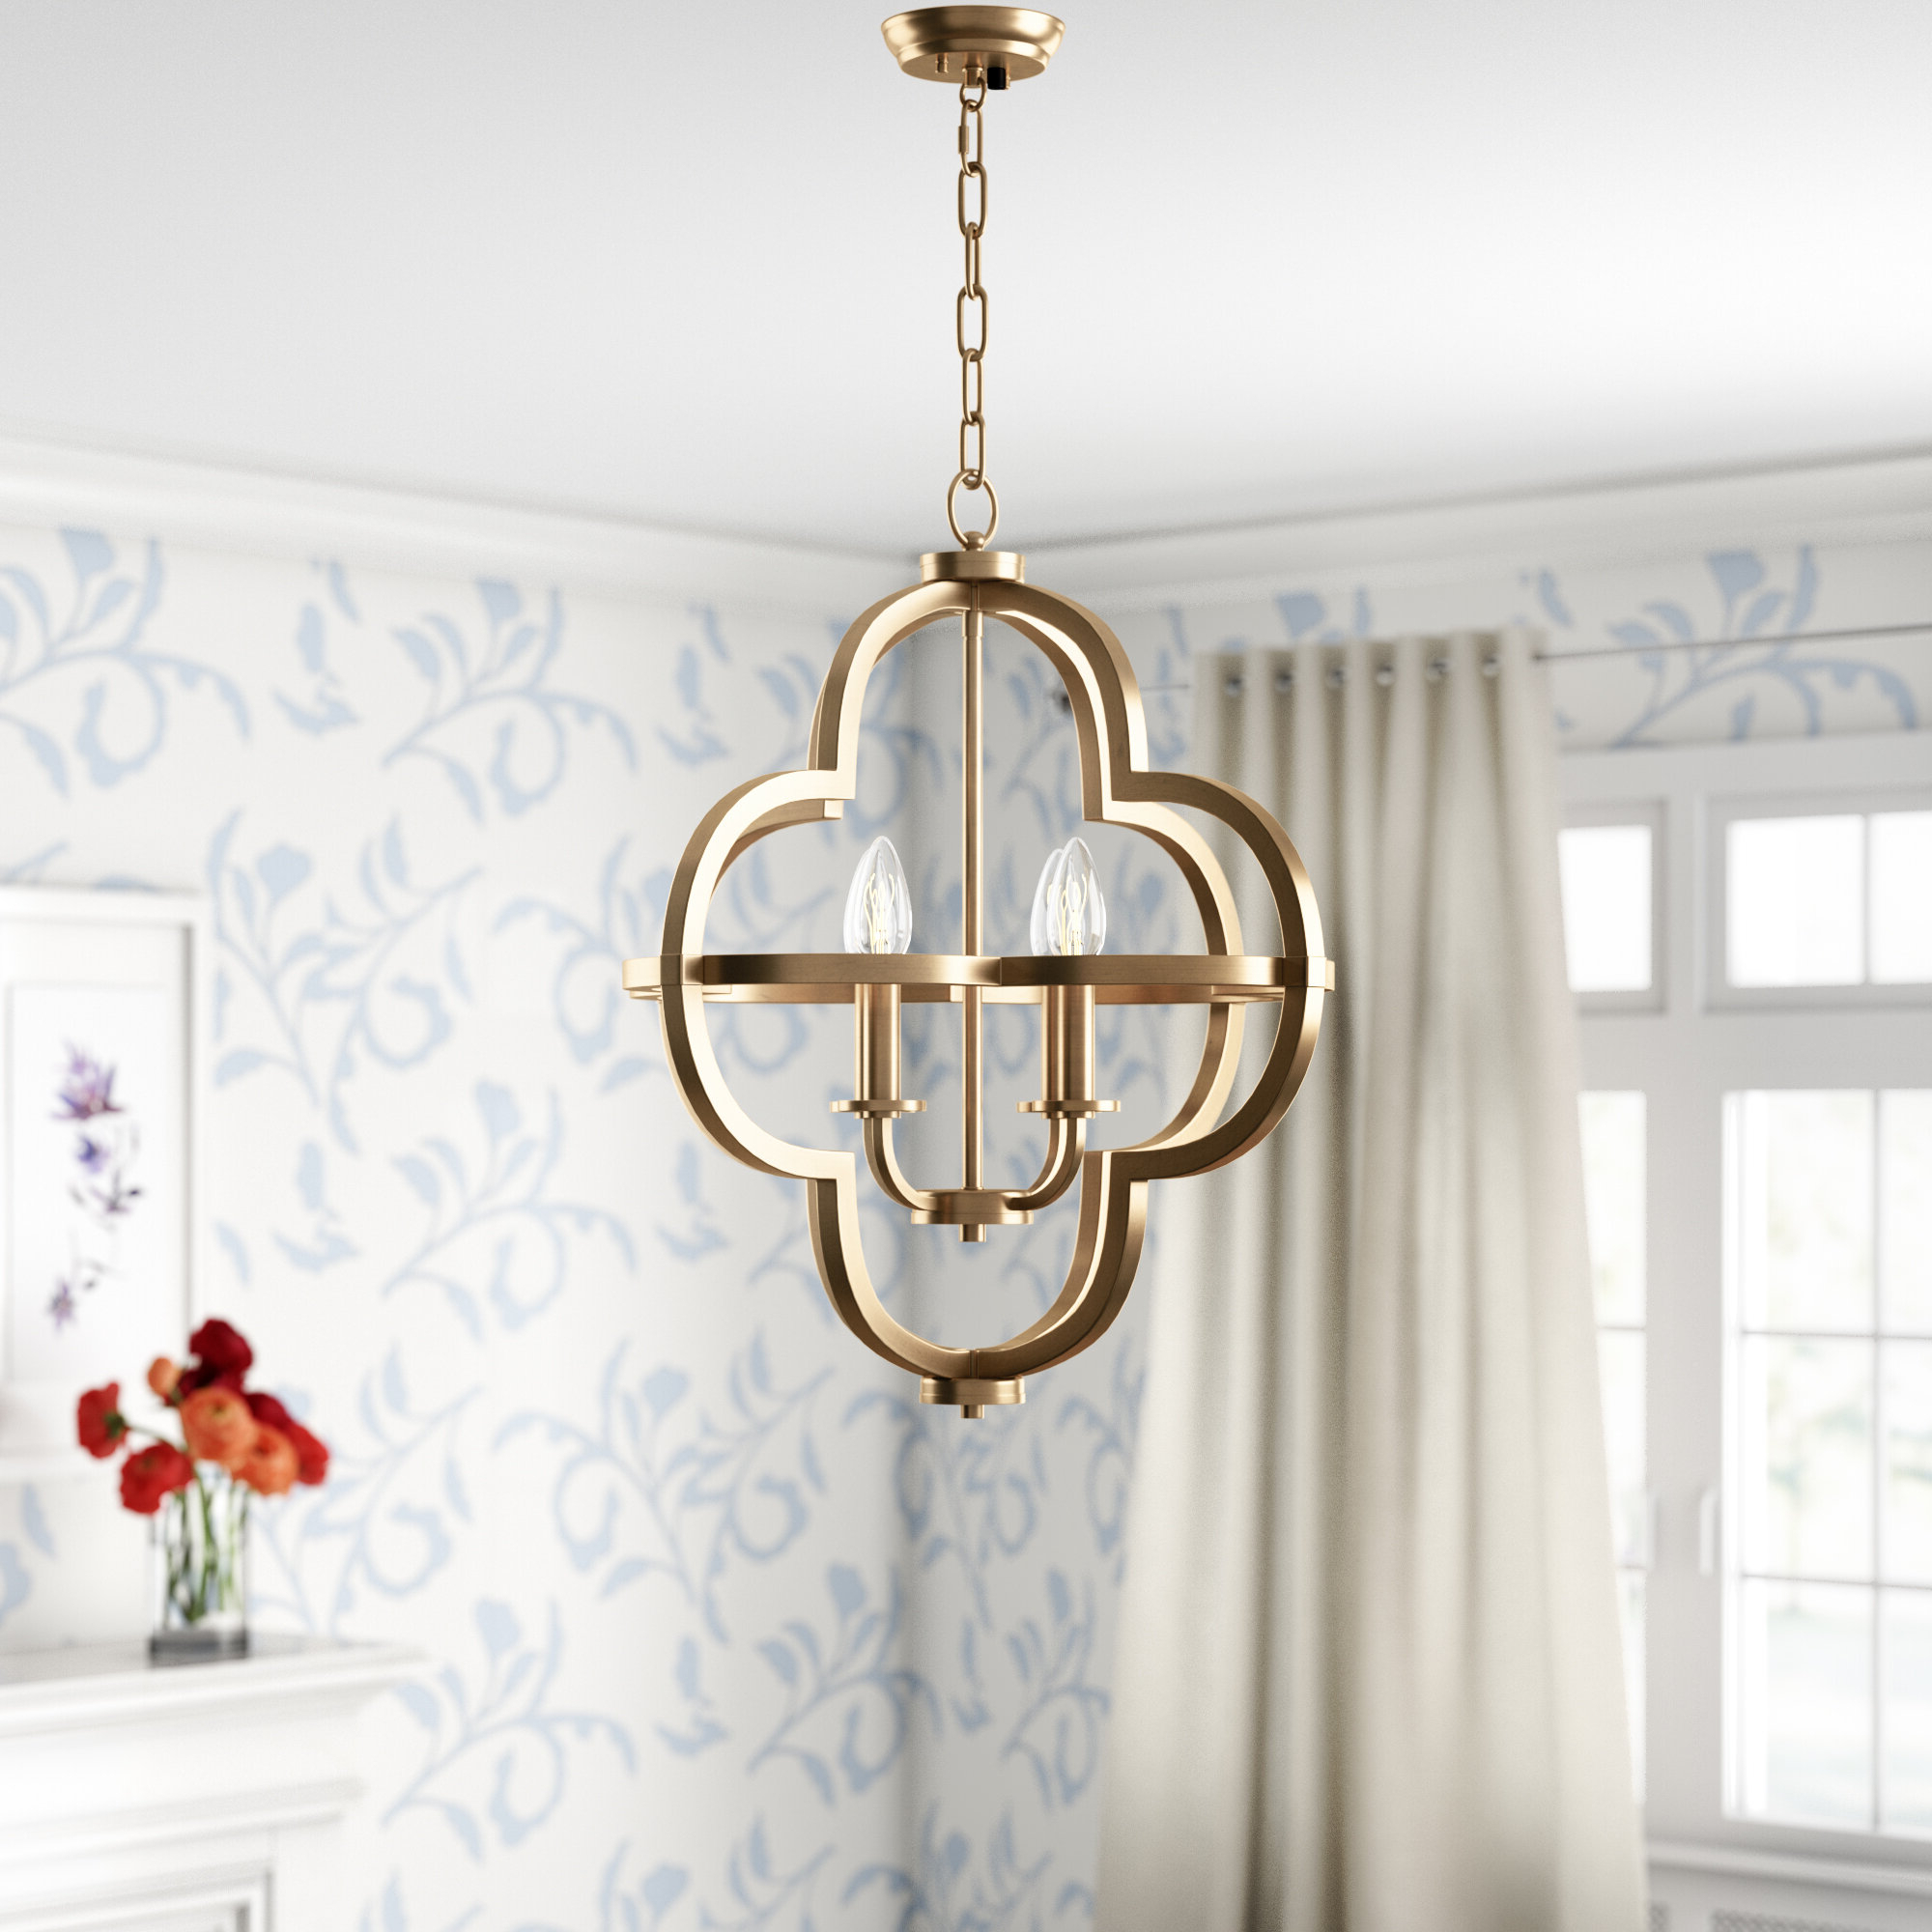 Middleton 4 Light Single Geometric Chandelier Inside Fashionable Reidar 4 Light Geometric Chandeliers (View 6 of 20)